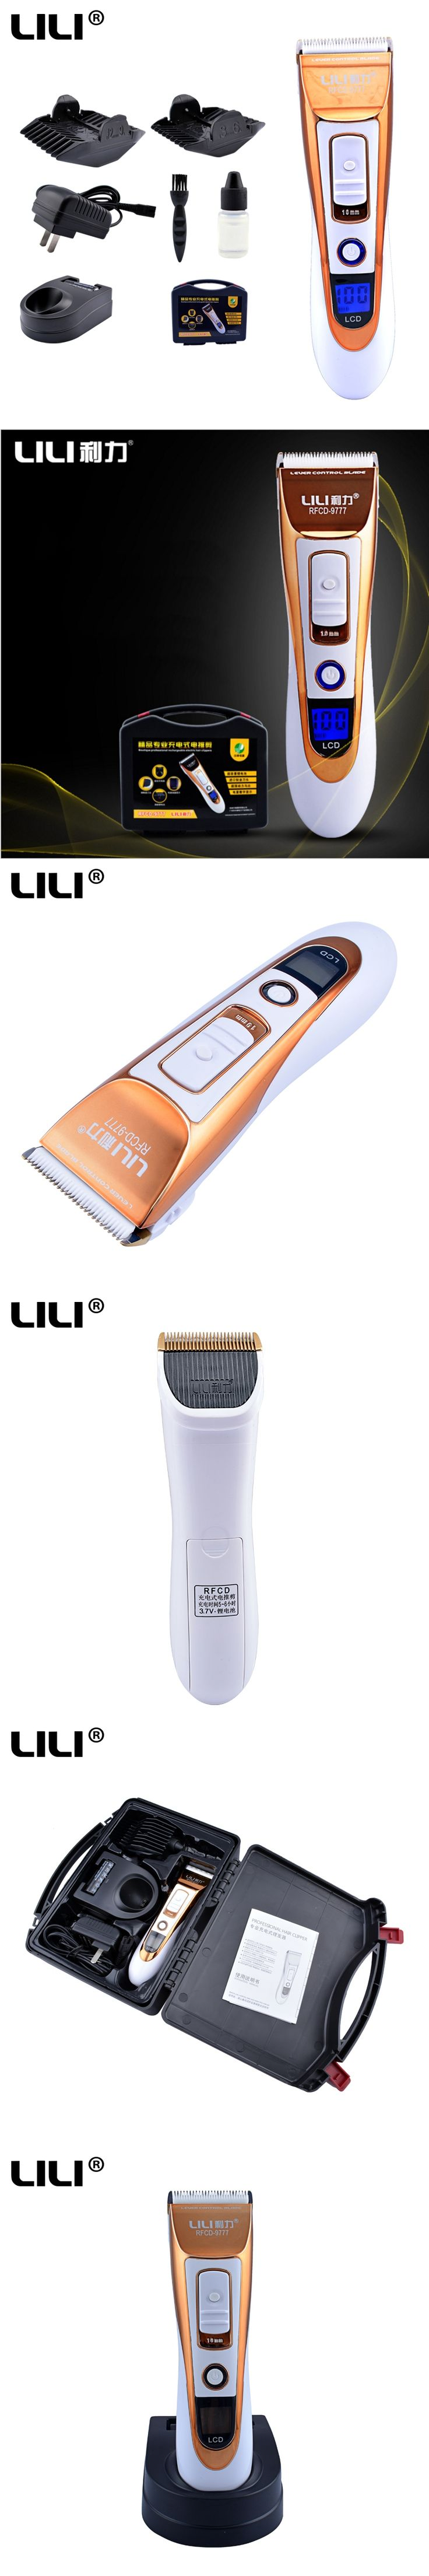 LILI 15W Men Professional Salon&Household Hair Trimmer For barber shop Intelligent Hair Clipper LCD Display With Charging Stand